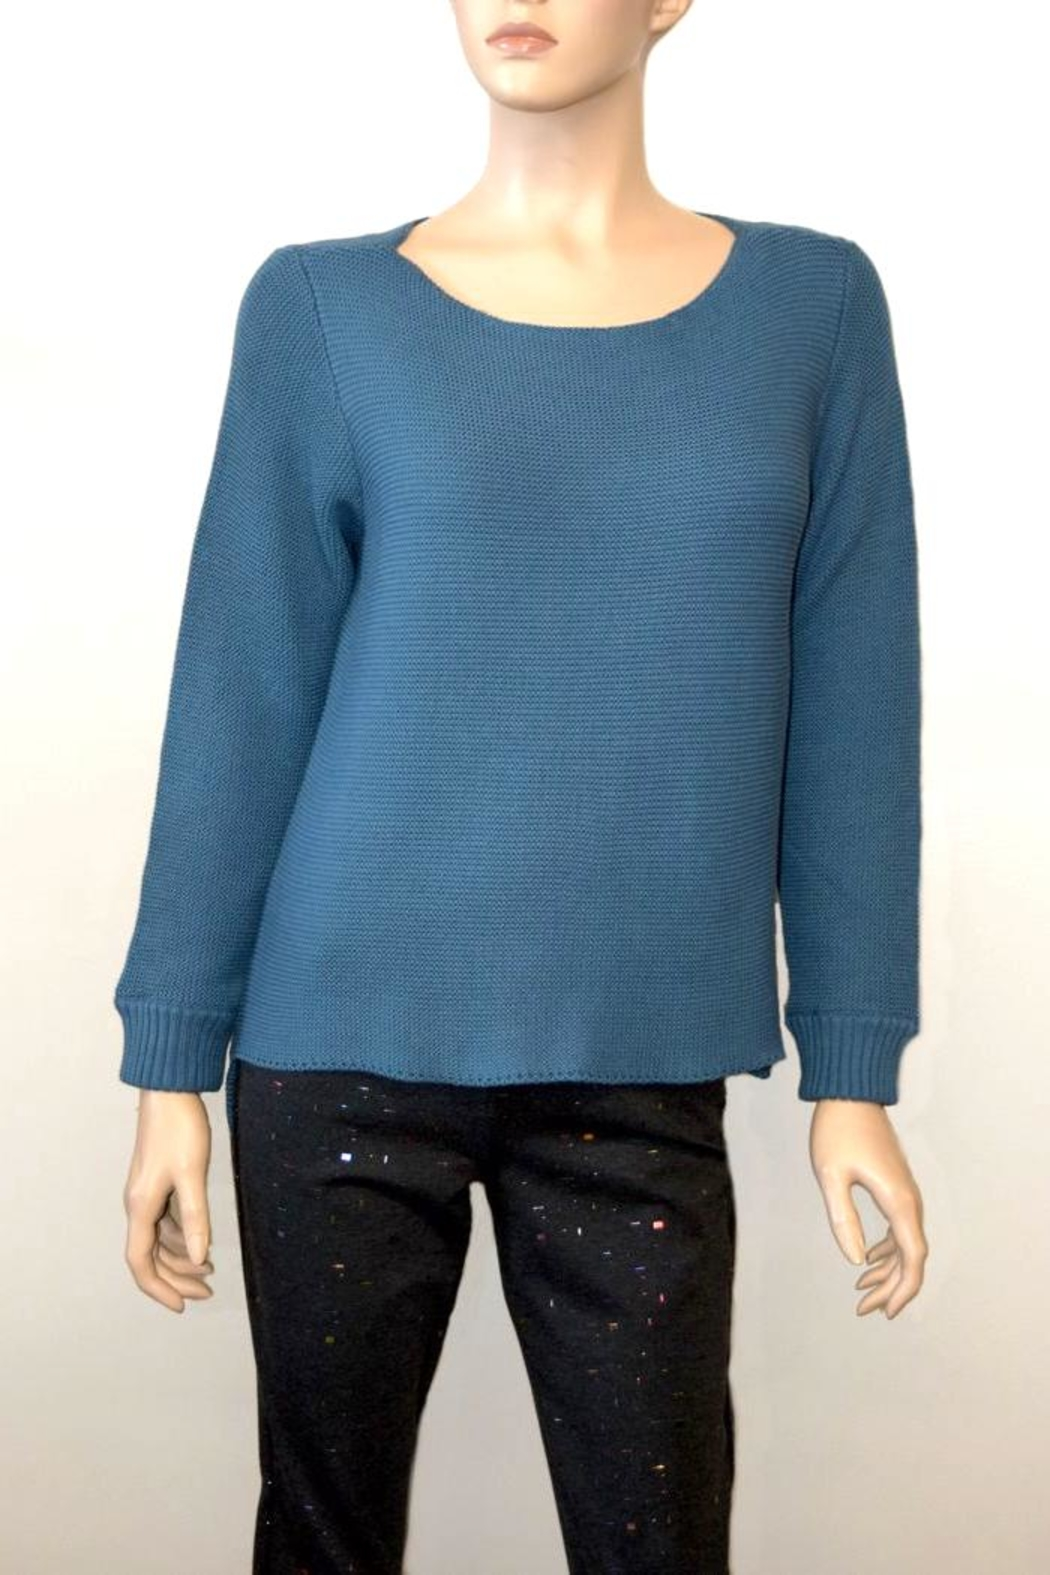 The Dressing Room Blue Cotton Sweater - Main Image